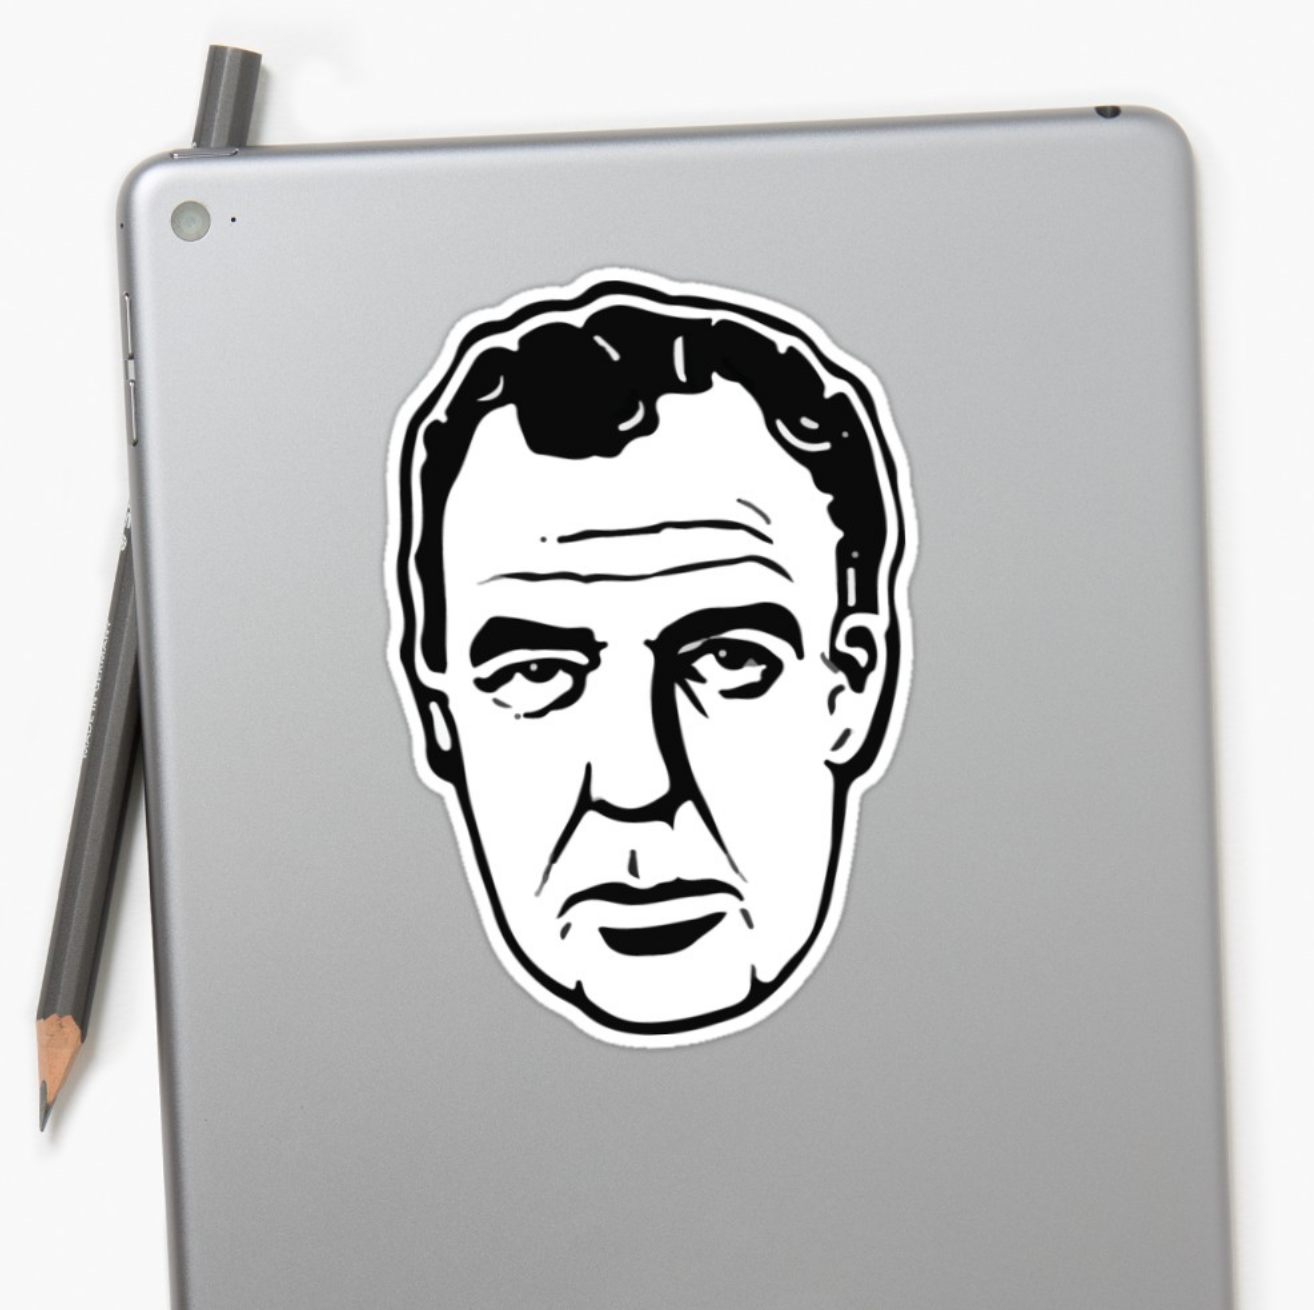 CLARKSON'S FACE - Available on 43 products including stickers, t-shirts, hoodies, cases and kids onesies